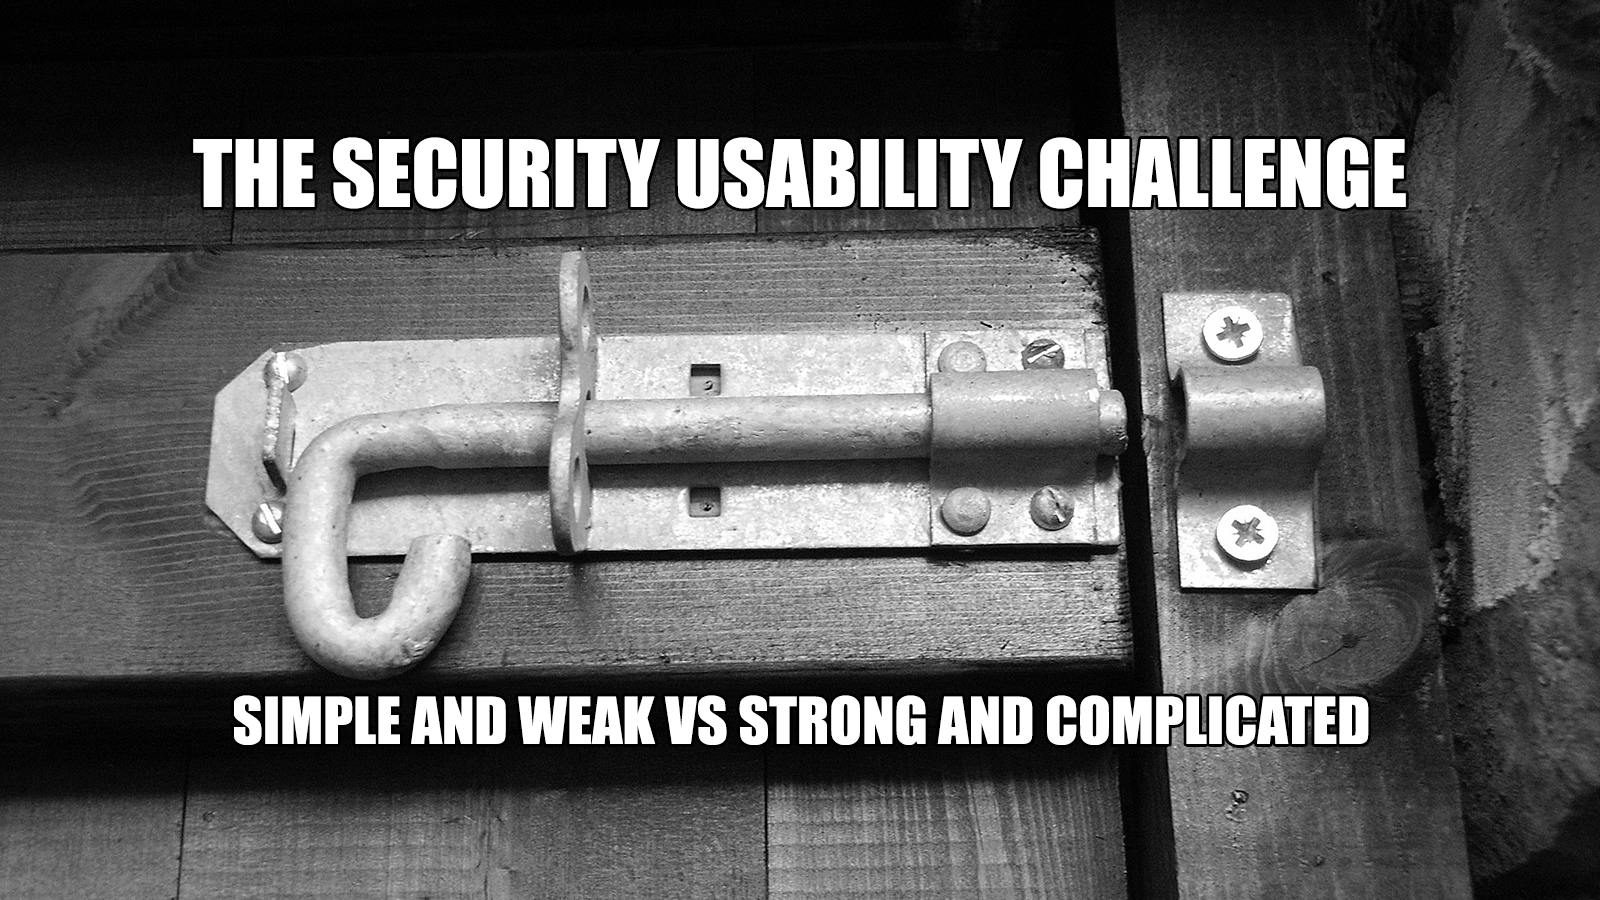 The Security Usability Challenge